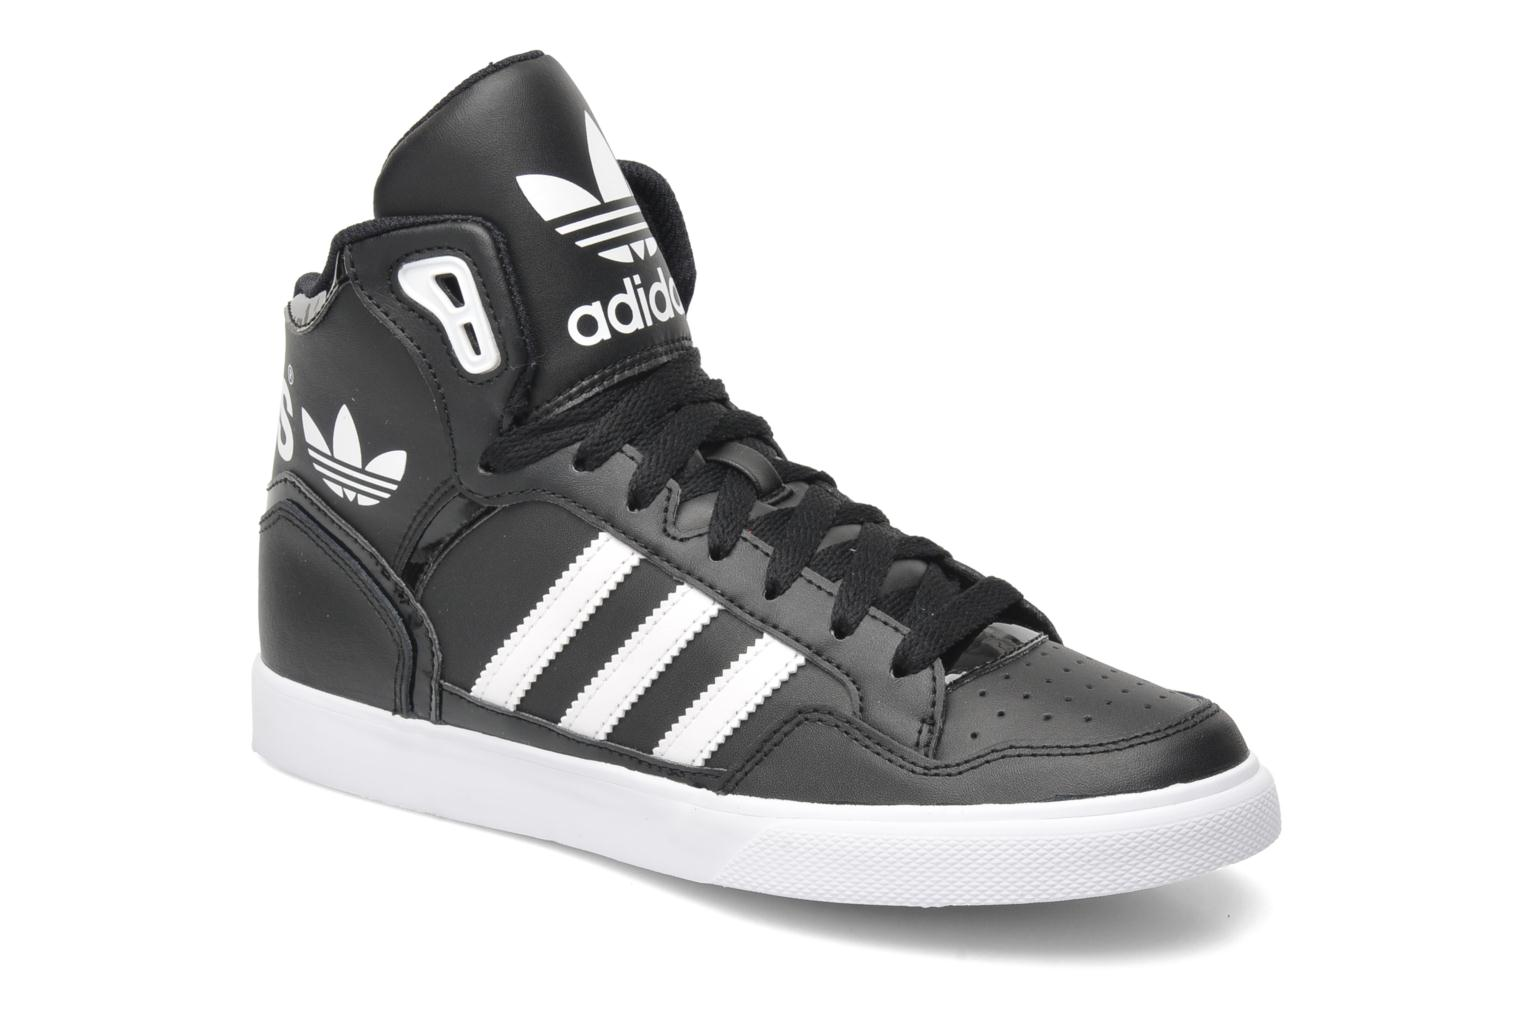 adidas originals extaball w trainers in black at 192978. Black Bedroom Furniture Sets. Home Design Ideas